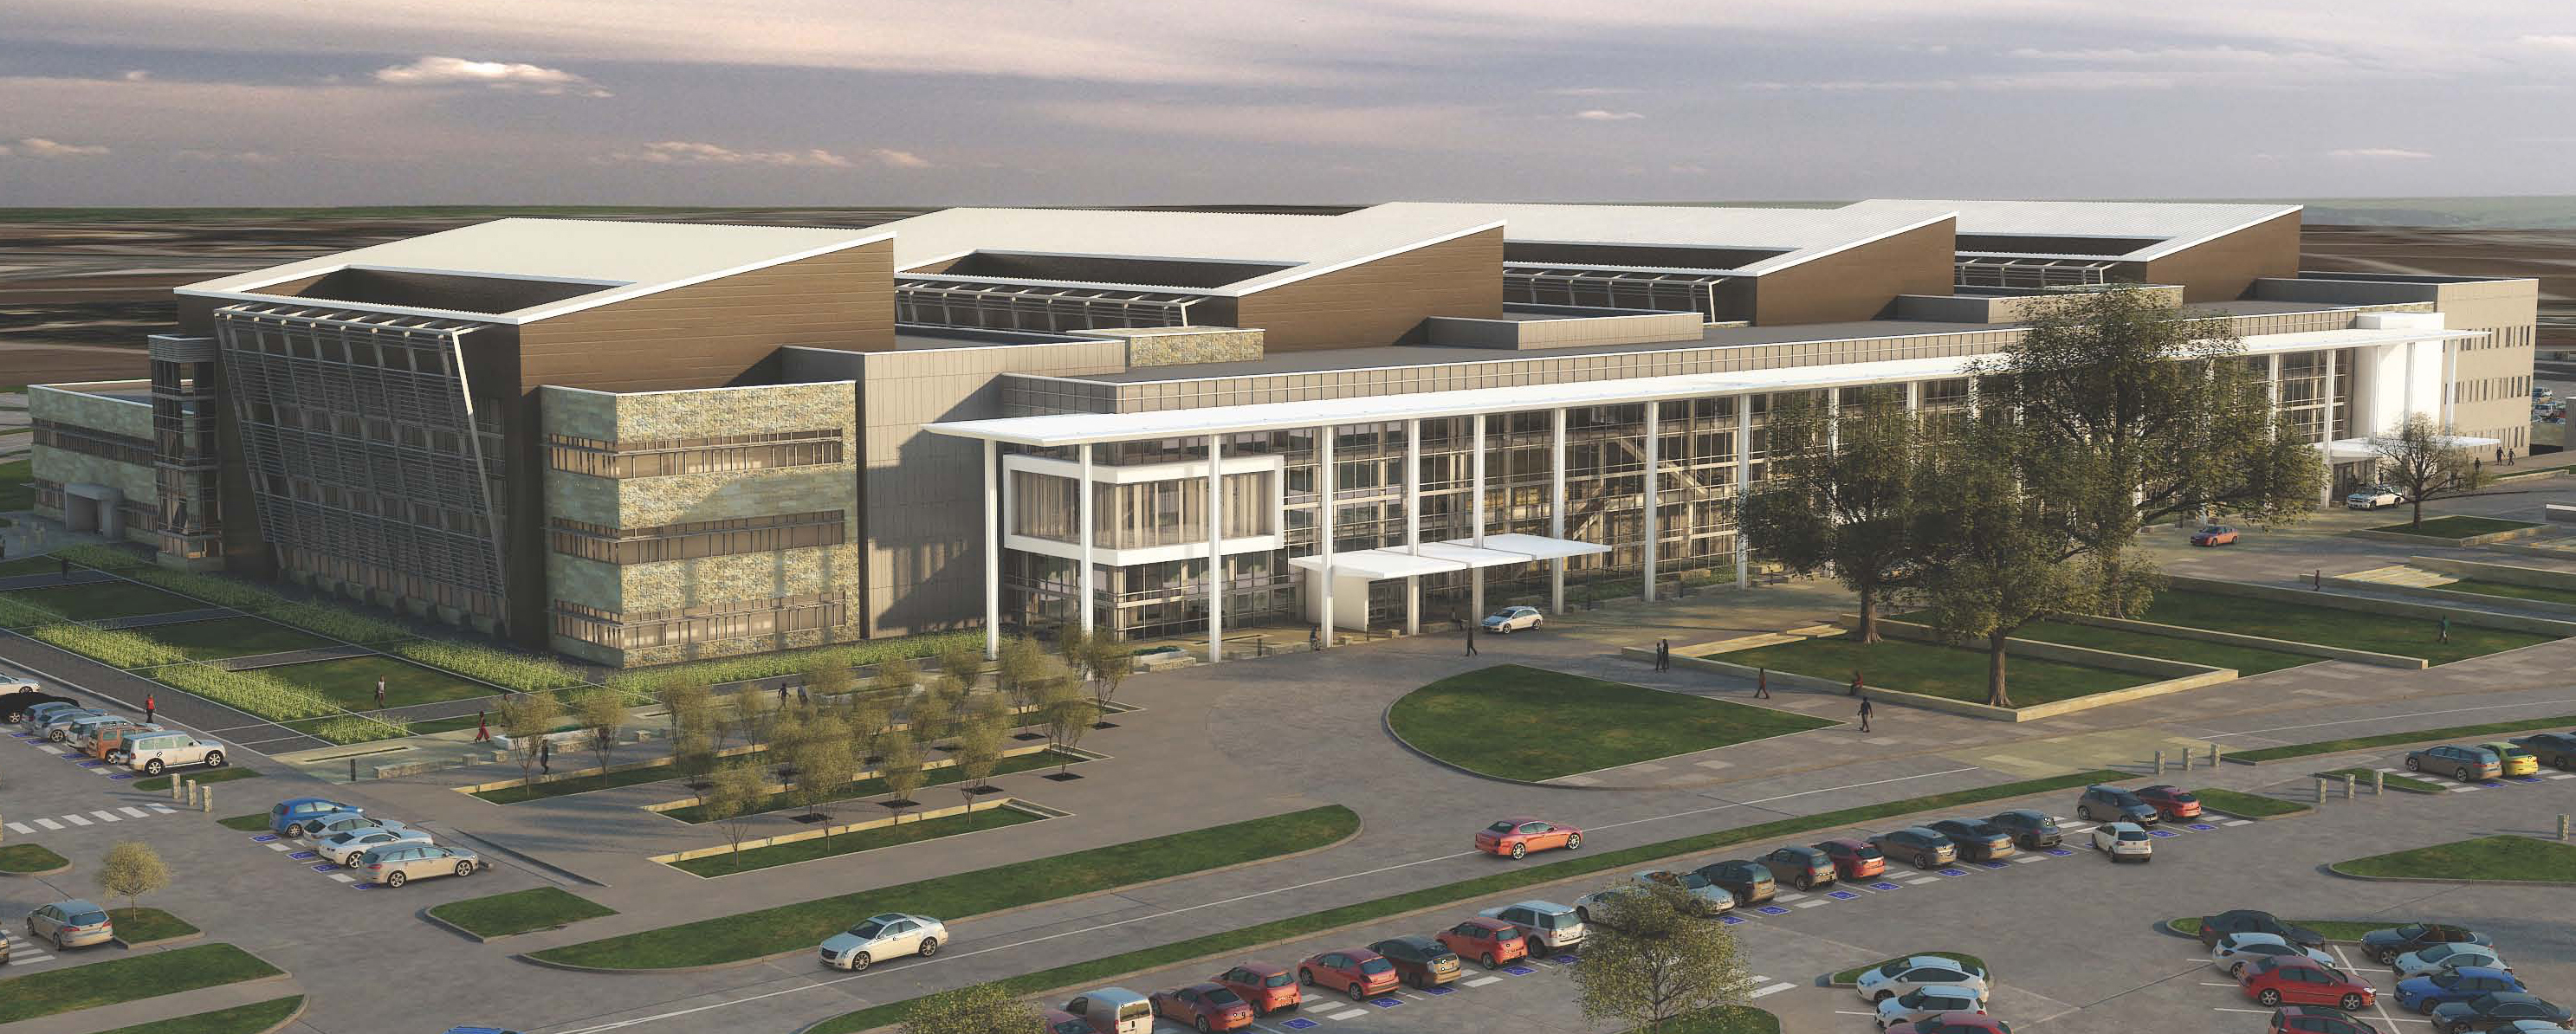 construction continues  largest ambulatory care center   dod  air force civil